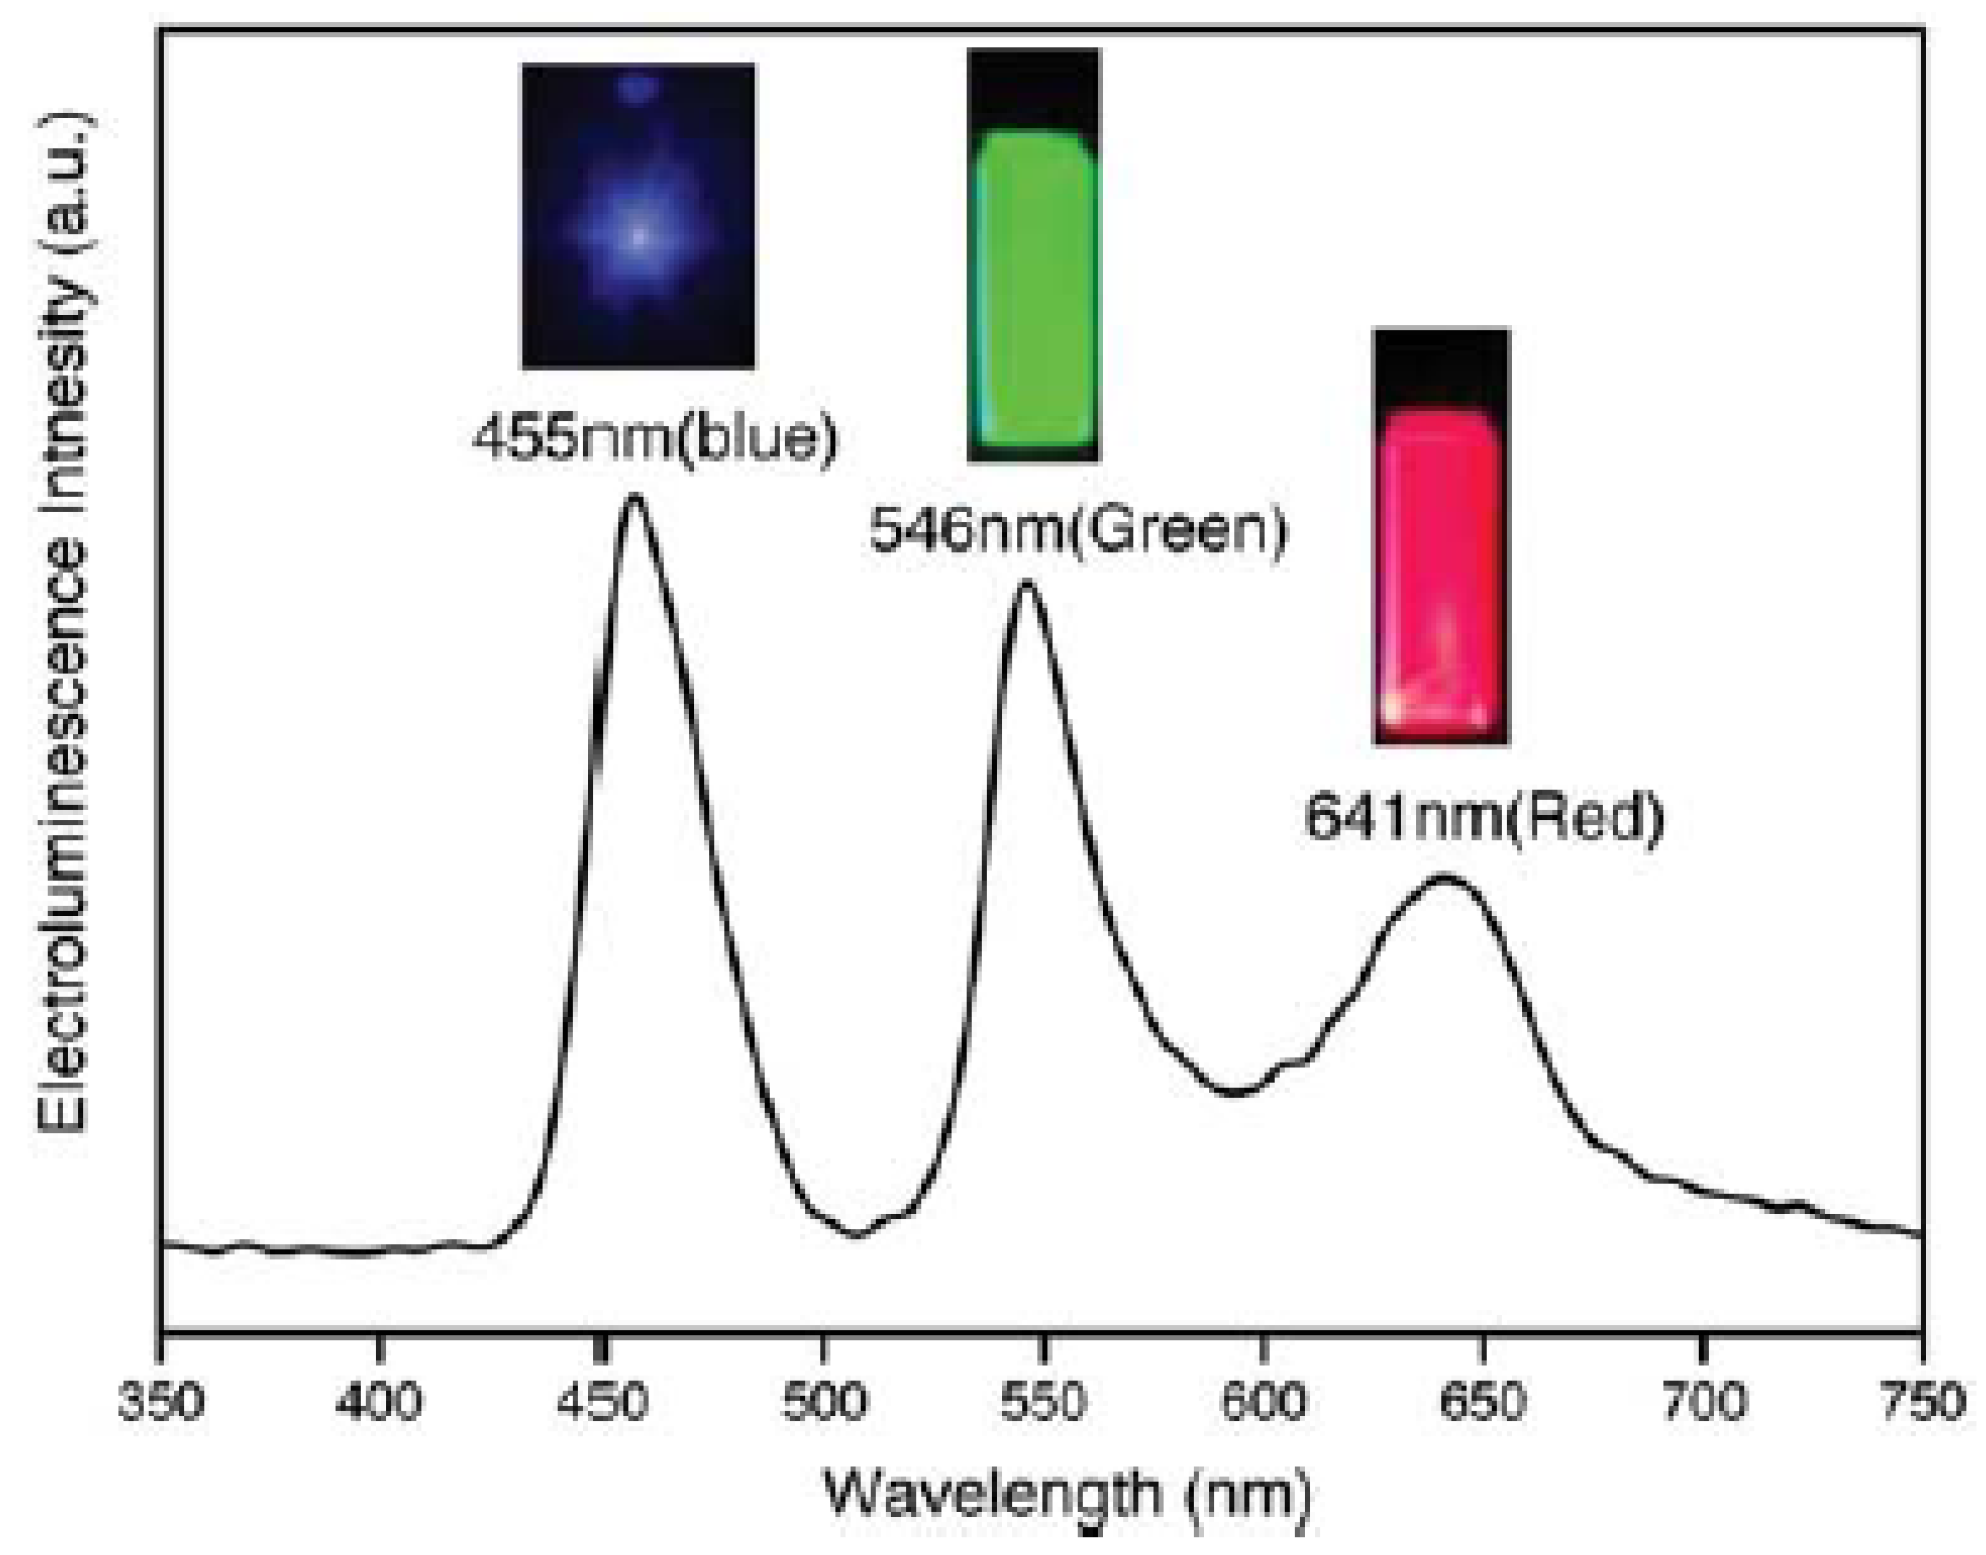 Materials | Free Full-Text | Quantum Dots and Their ...